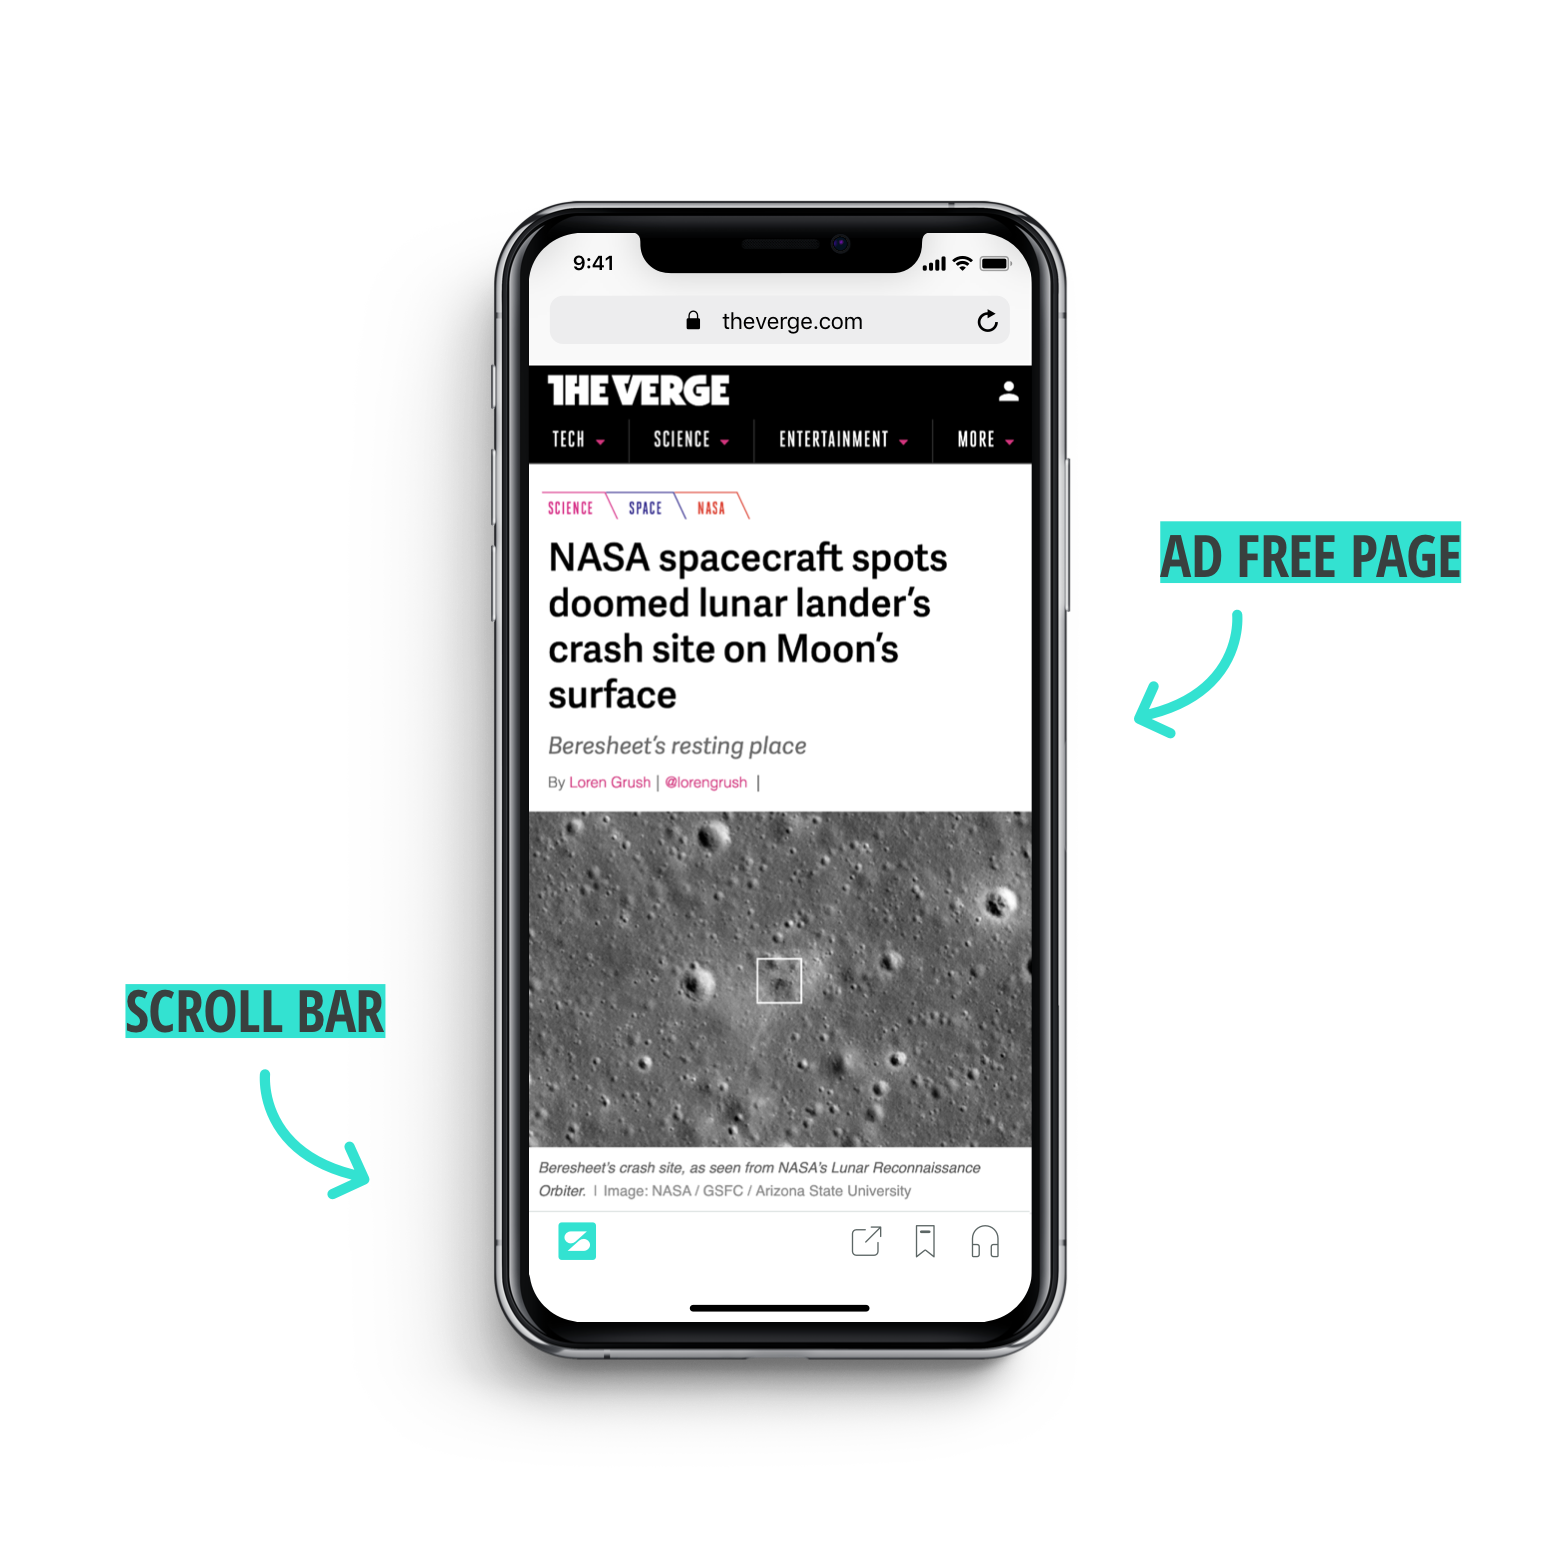 A phone screen shows ad-free browsing of The Verge using Scroll and emphasizes the Scroll bar